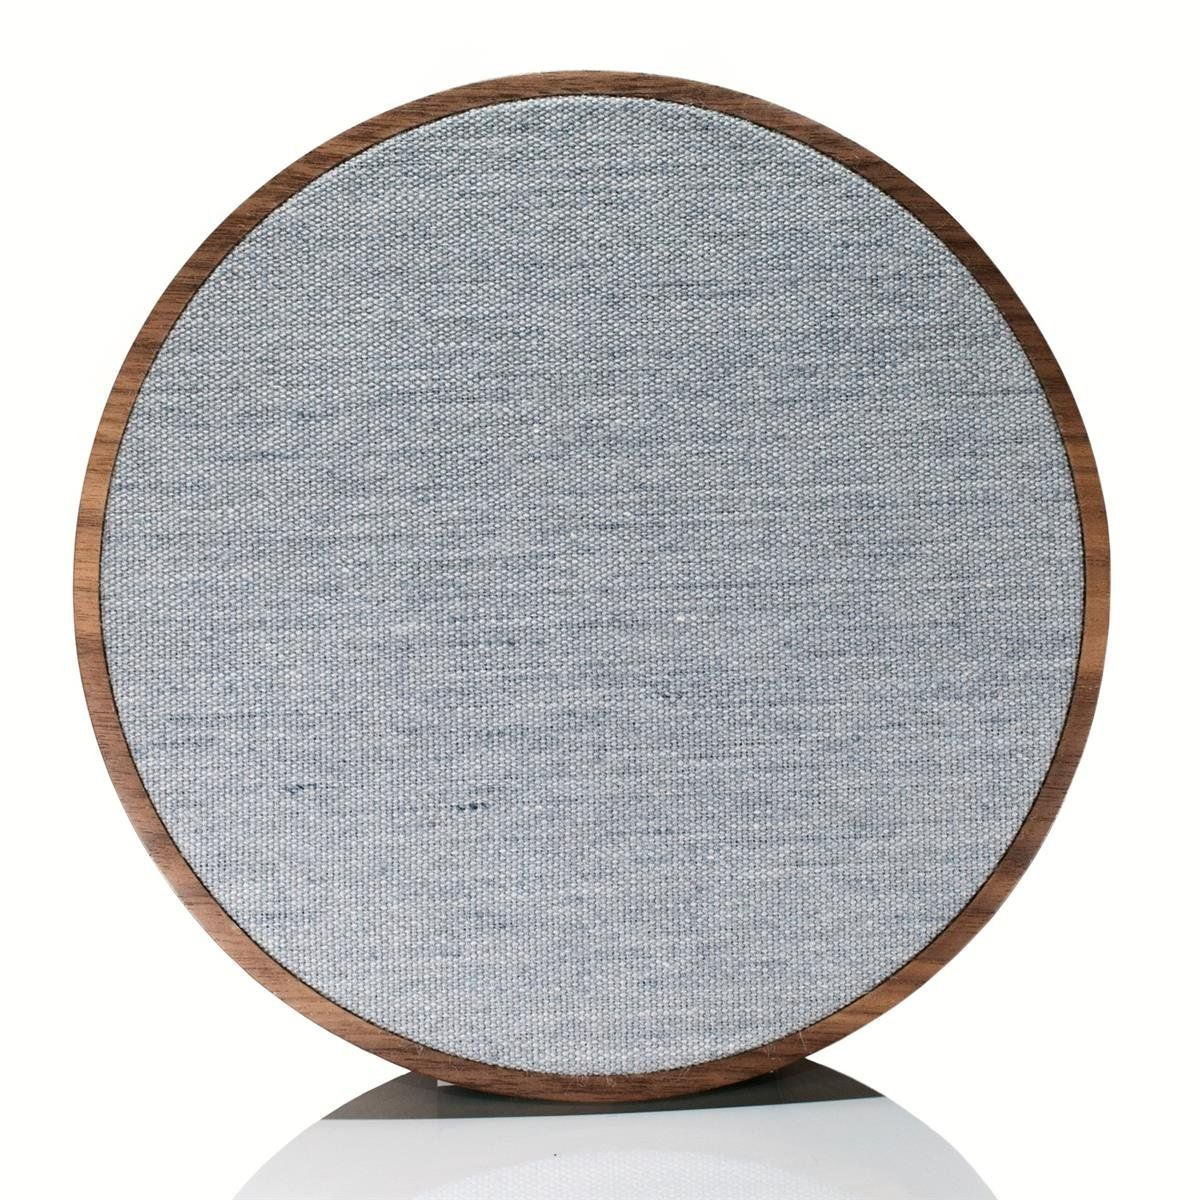 Tivoli Audio ORB Wireless Speaker- Walnut/Grey. CONNECTIVITY Wireless Network enabled (Wi-Fi), Bluetooth® wireless connectivity. 3.5mm Auxiliary Input. Easily connect each speaker to your home network using SAC technology, Connect a multitude of speakers on a single network. POWER DC power , Optional rechargeable battery provides up to 8 hours of full playback, making the speaker truly wireless. (Battery not included). Stand included, Keyhole slot for simple hanging, Small compact design...